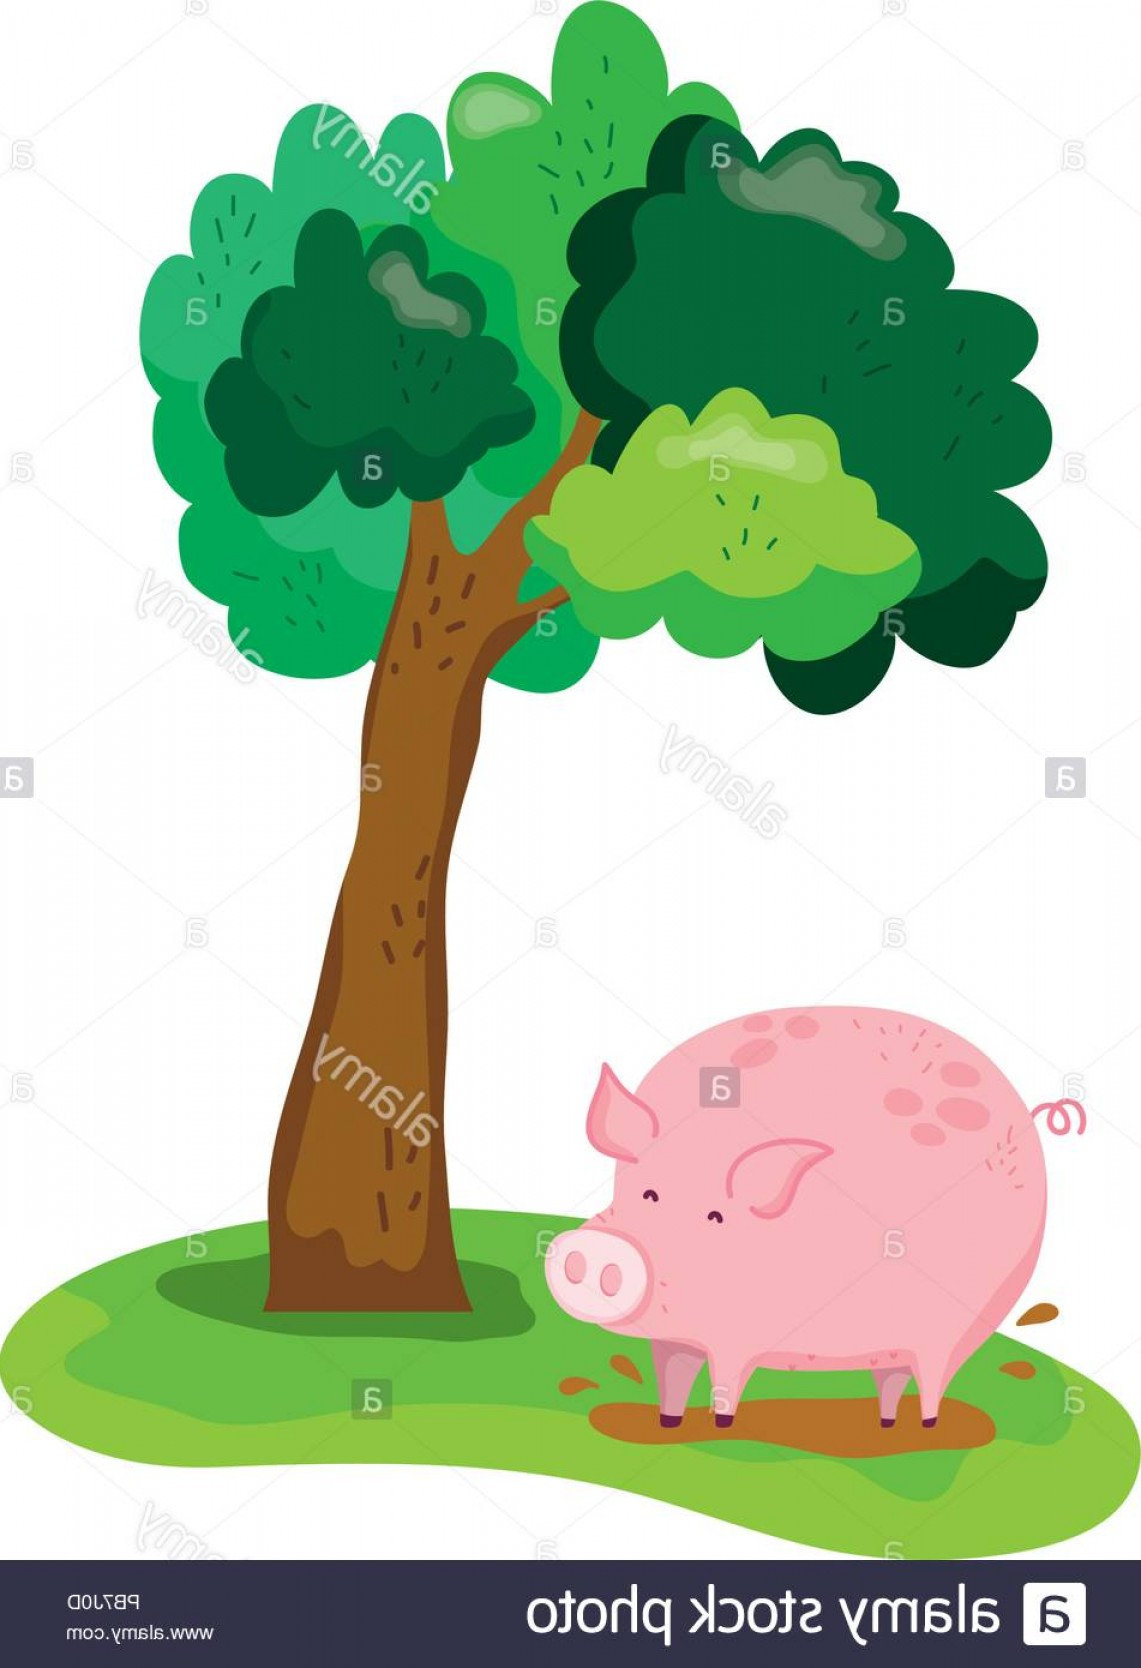 Swamp Vector Art: Tree Next To Pig Farm Animal In Swamp Image